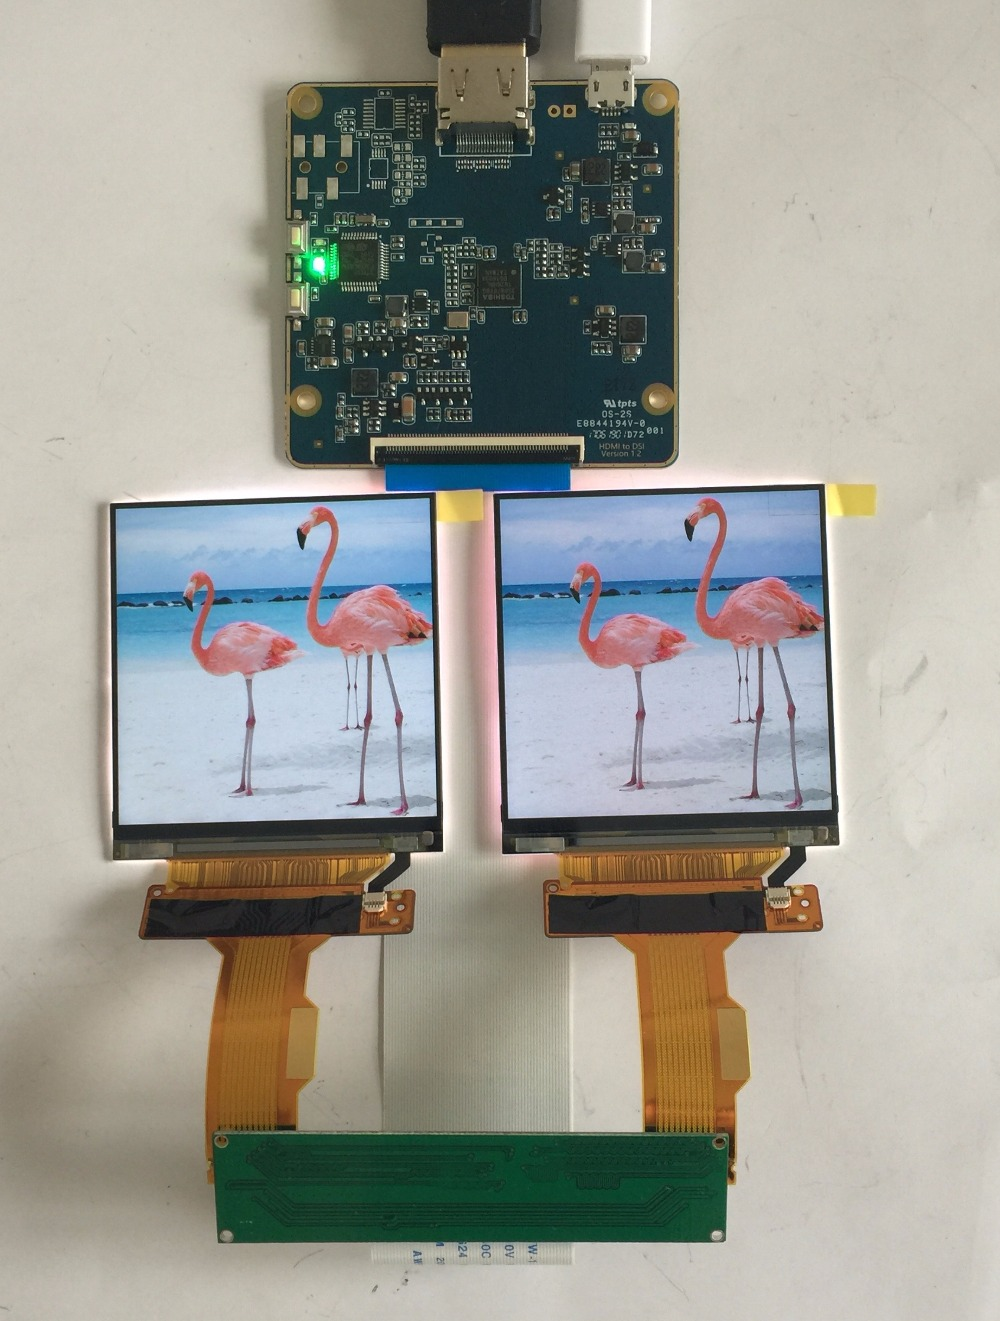 2.9 Inch 2K 1440*1440 120Hz Dual LCD Screen DP To MIPI Driver Board Monitor For AR VR MR HMD Headset Display LS029B3SX02